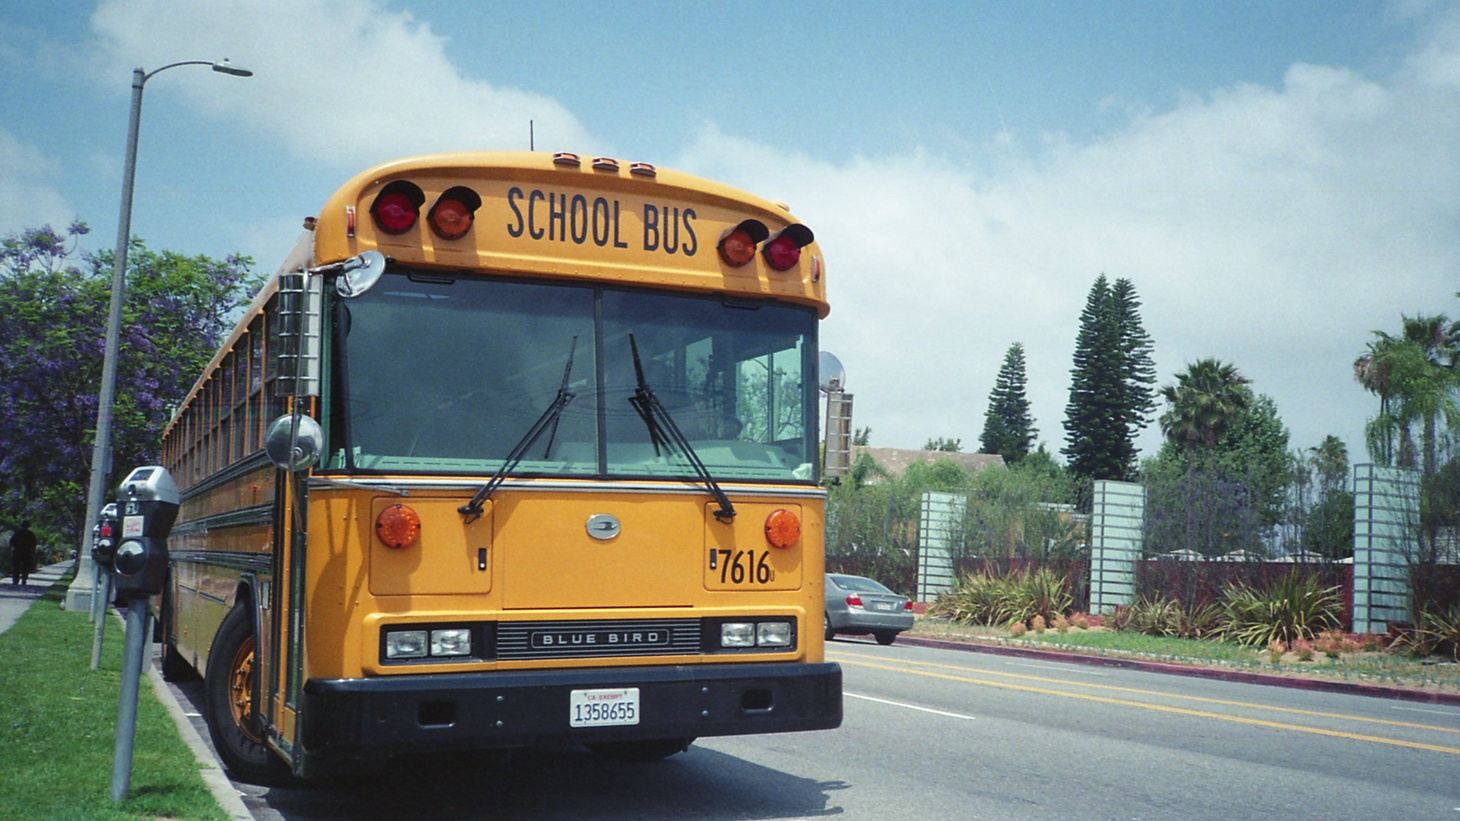 A front view of a school bus owned by Los Angeles Unified School District of Los Angeles, California.